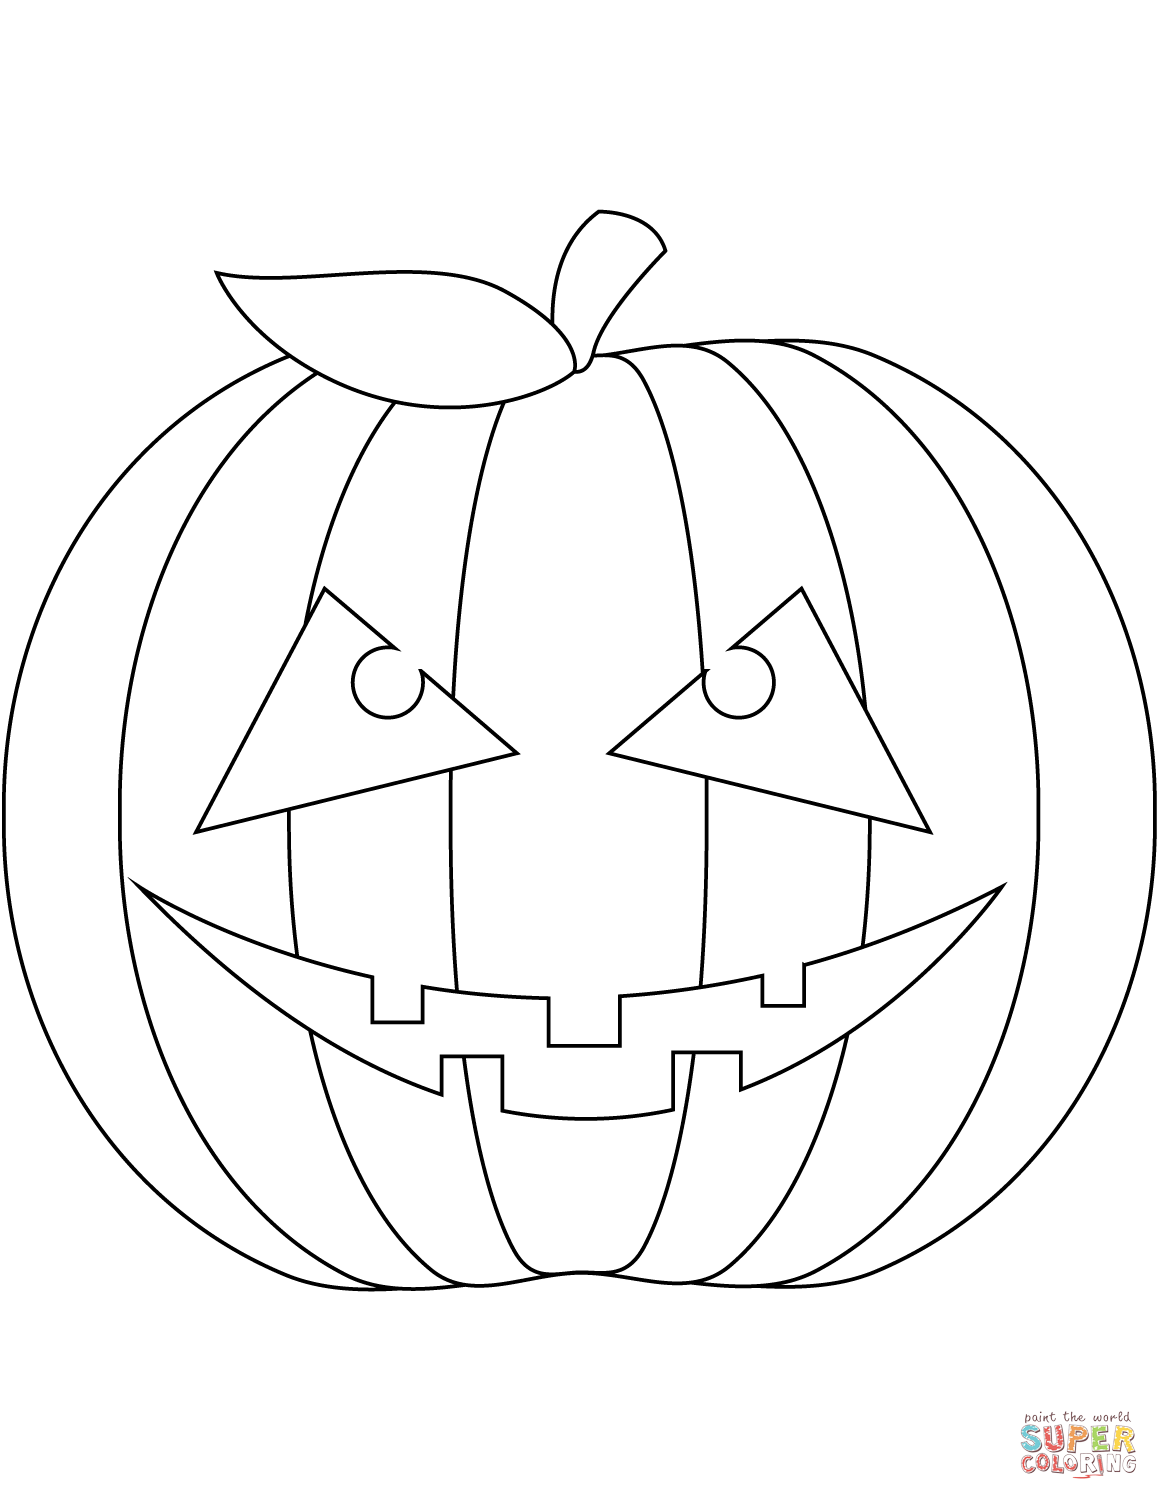 pumpkin faces coloring pages scary pumpkin face coloring page free printable coloring faces pumpkin pages coloring